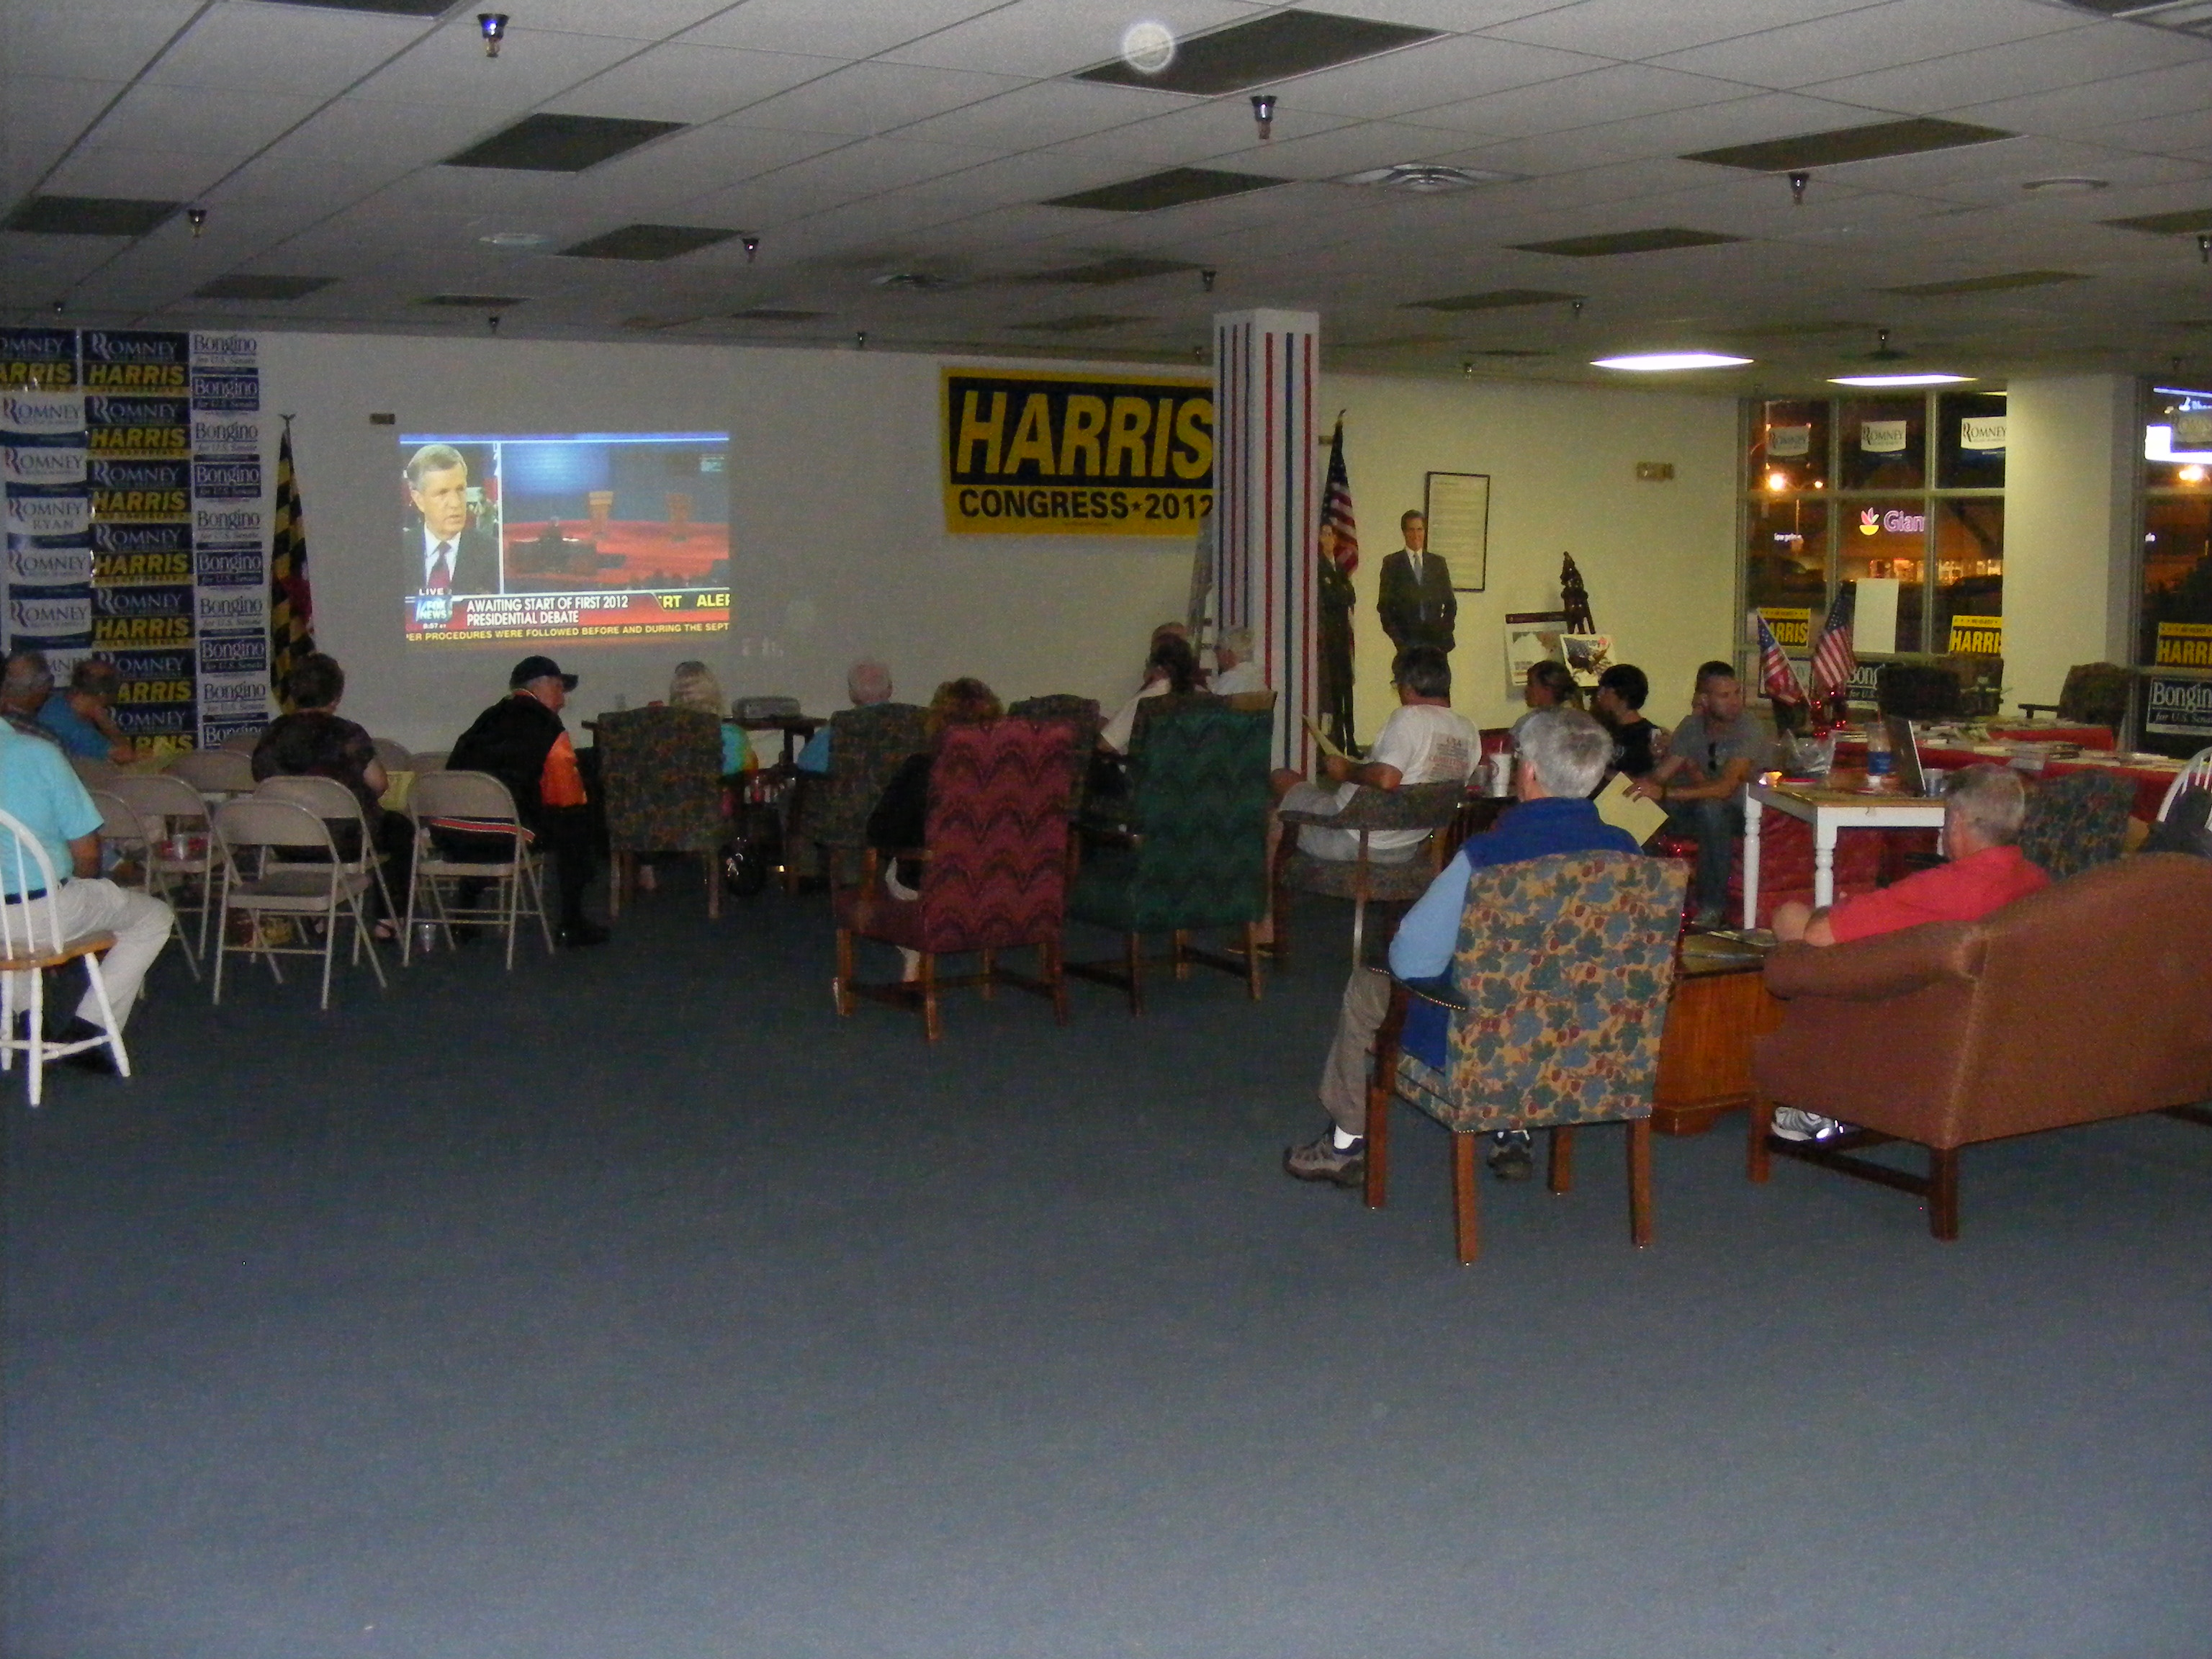 The group watching the debate at Wicomico County's Republican headquarters.